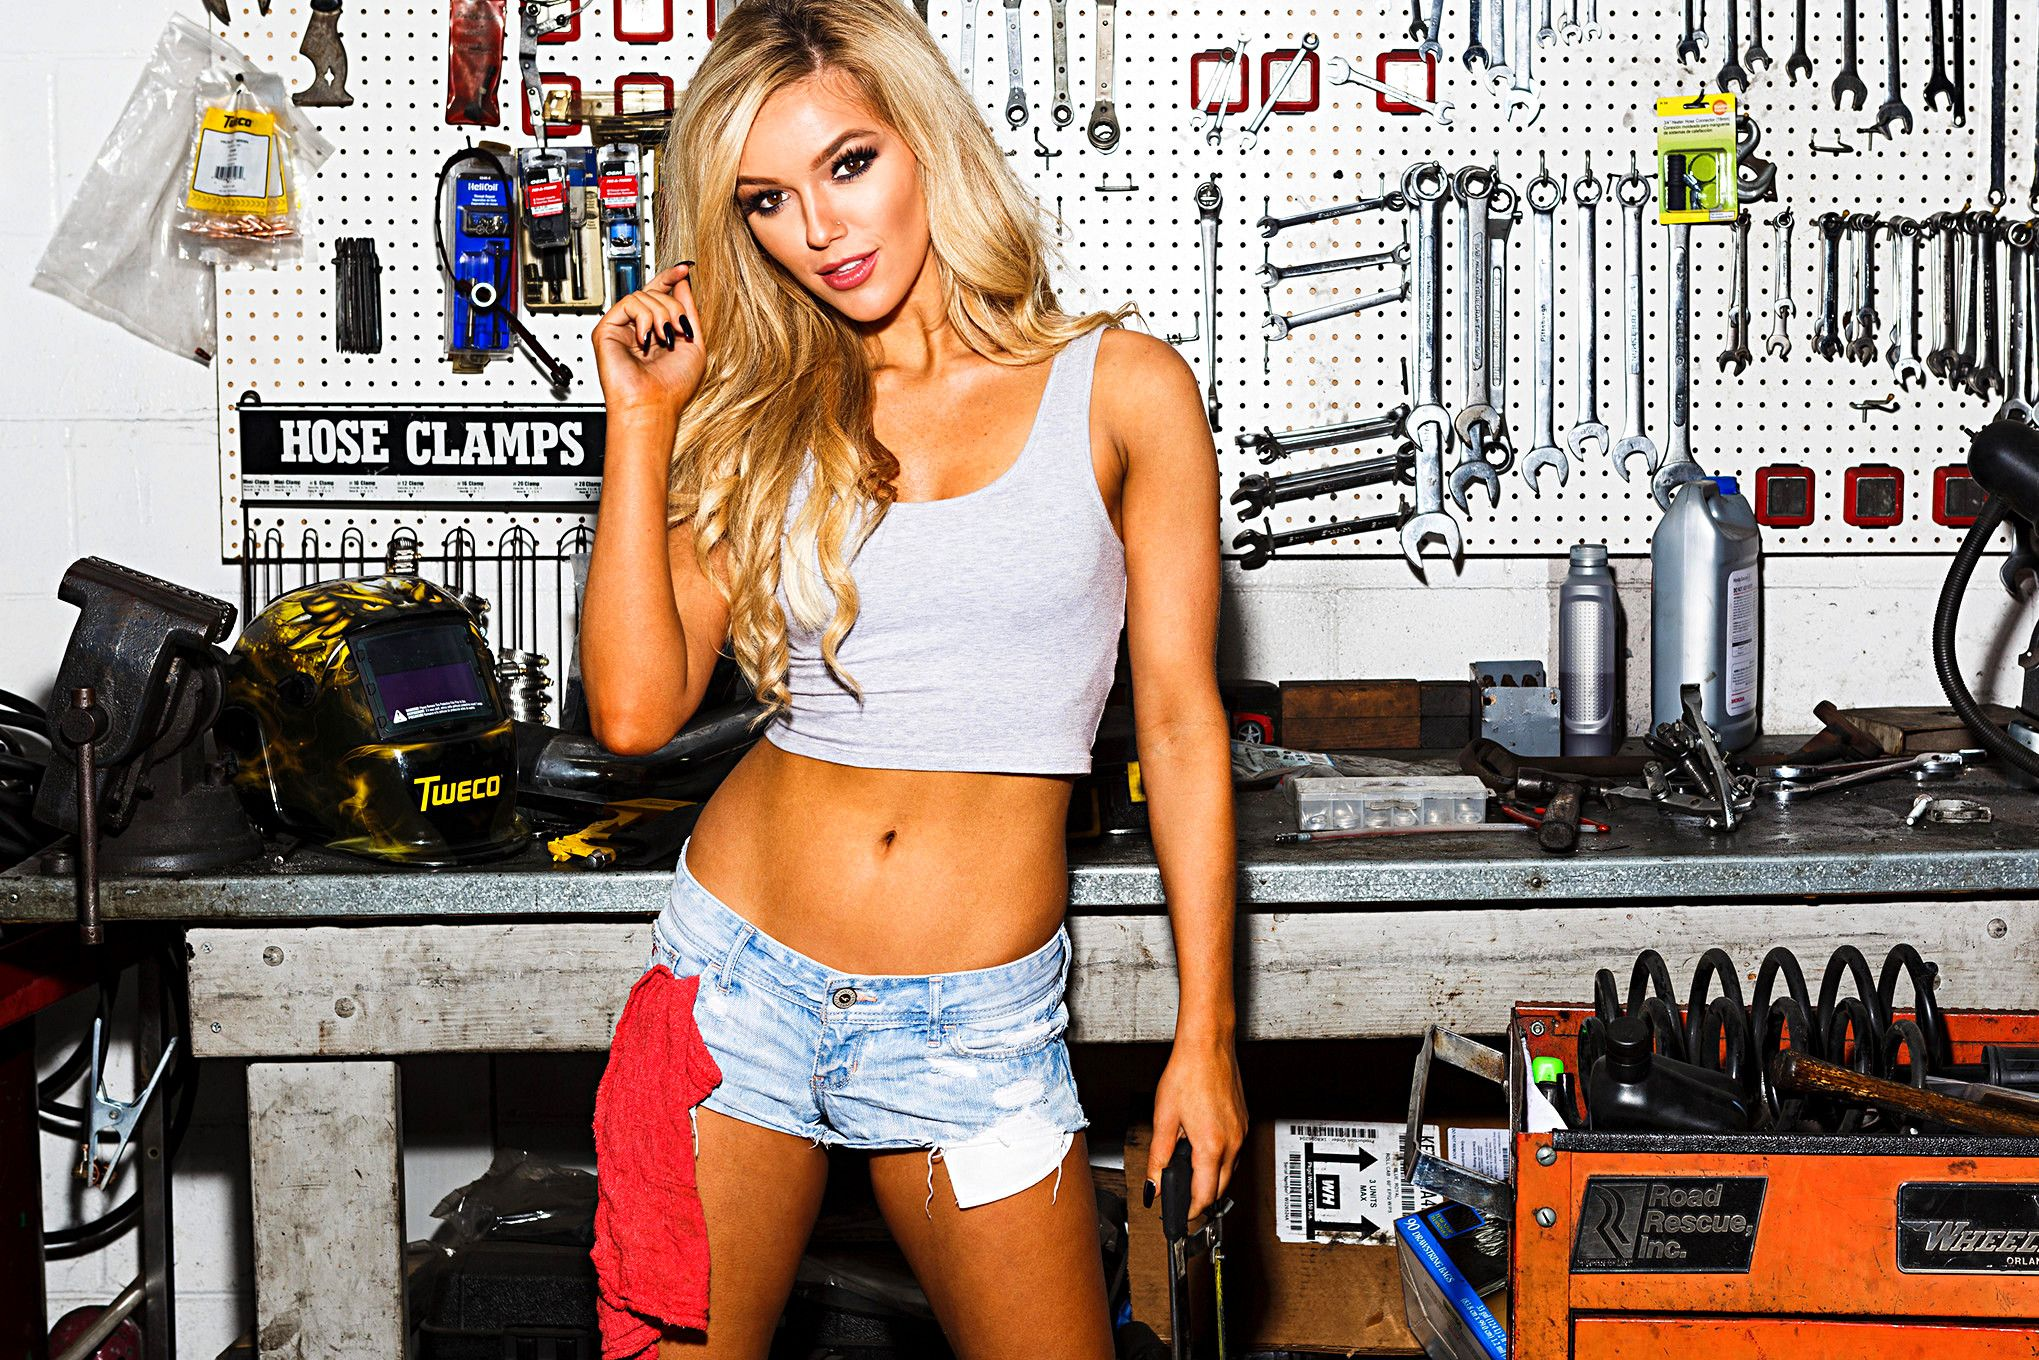 Courtney Riggs | New Nitto Tire Girl